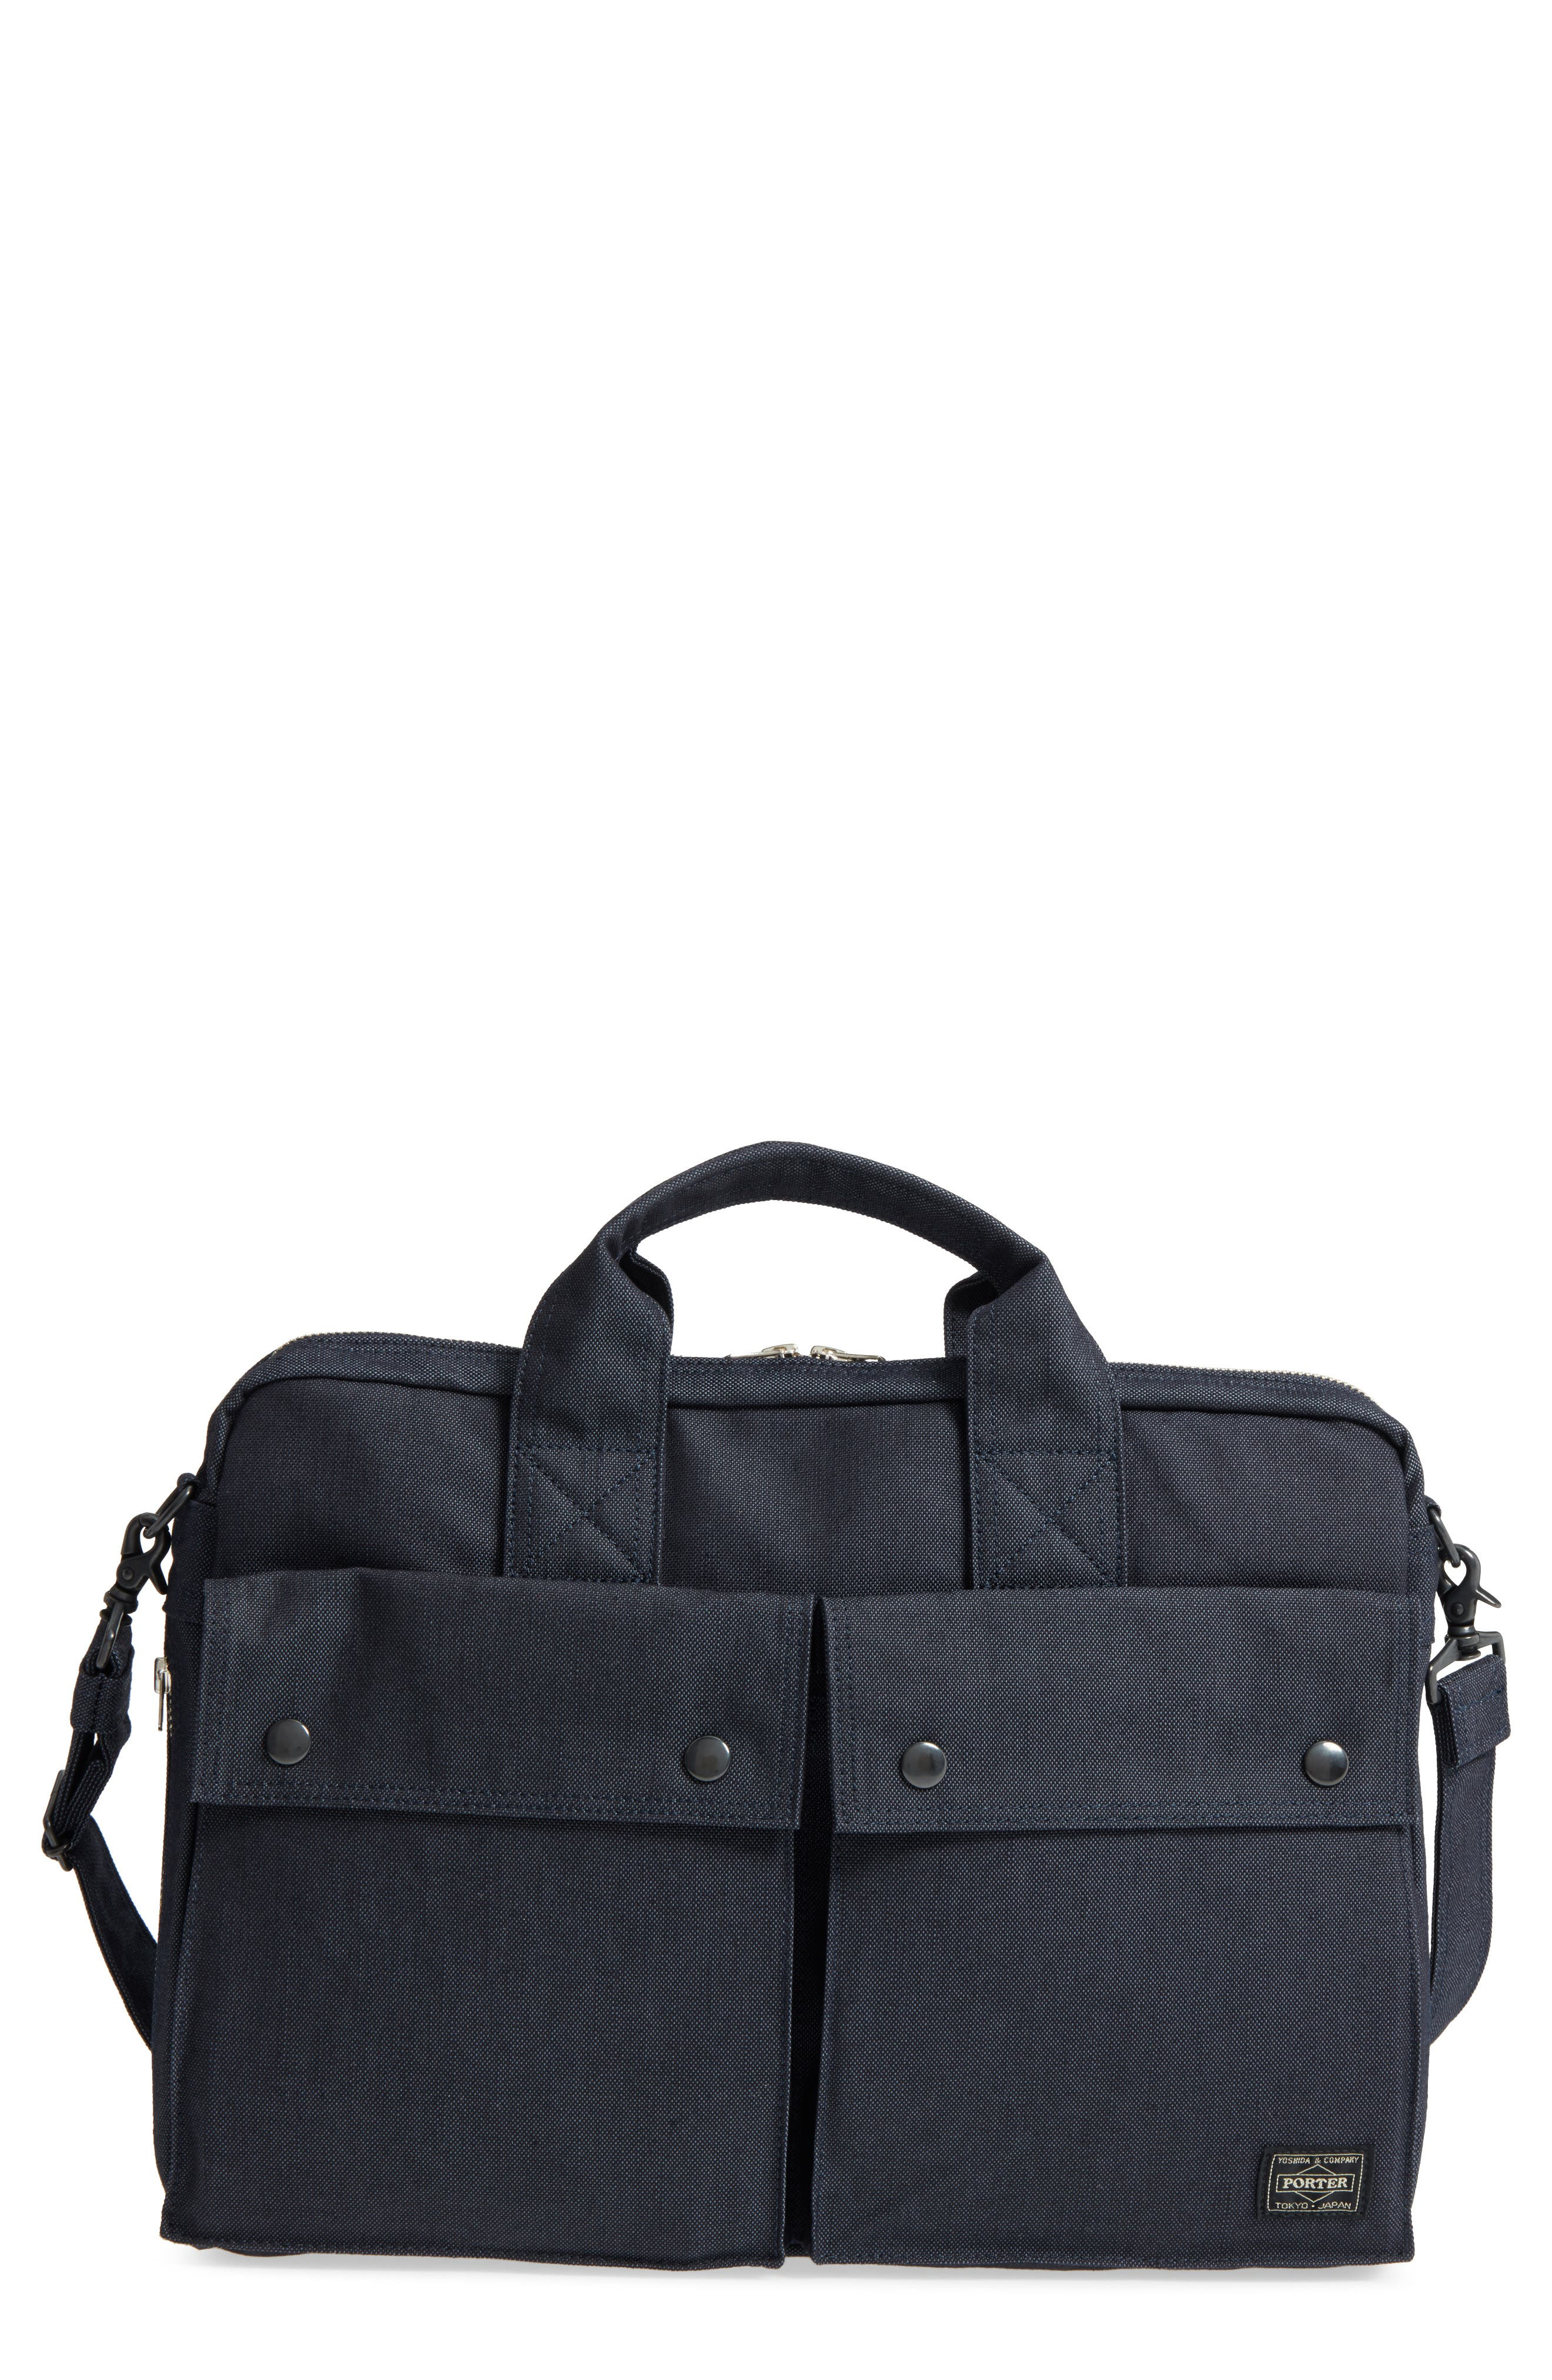 Porter-Yoshida & Co. Smoky Two-Way Briefcase,                         Main,                         color, Navy